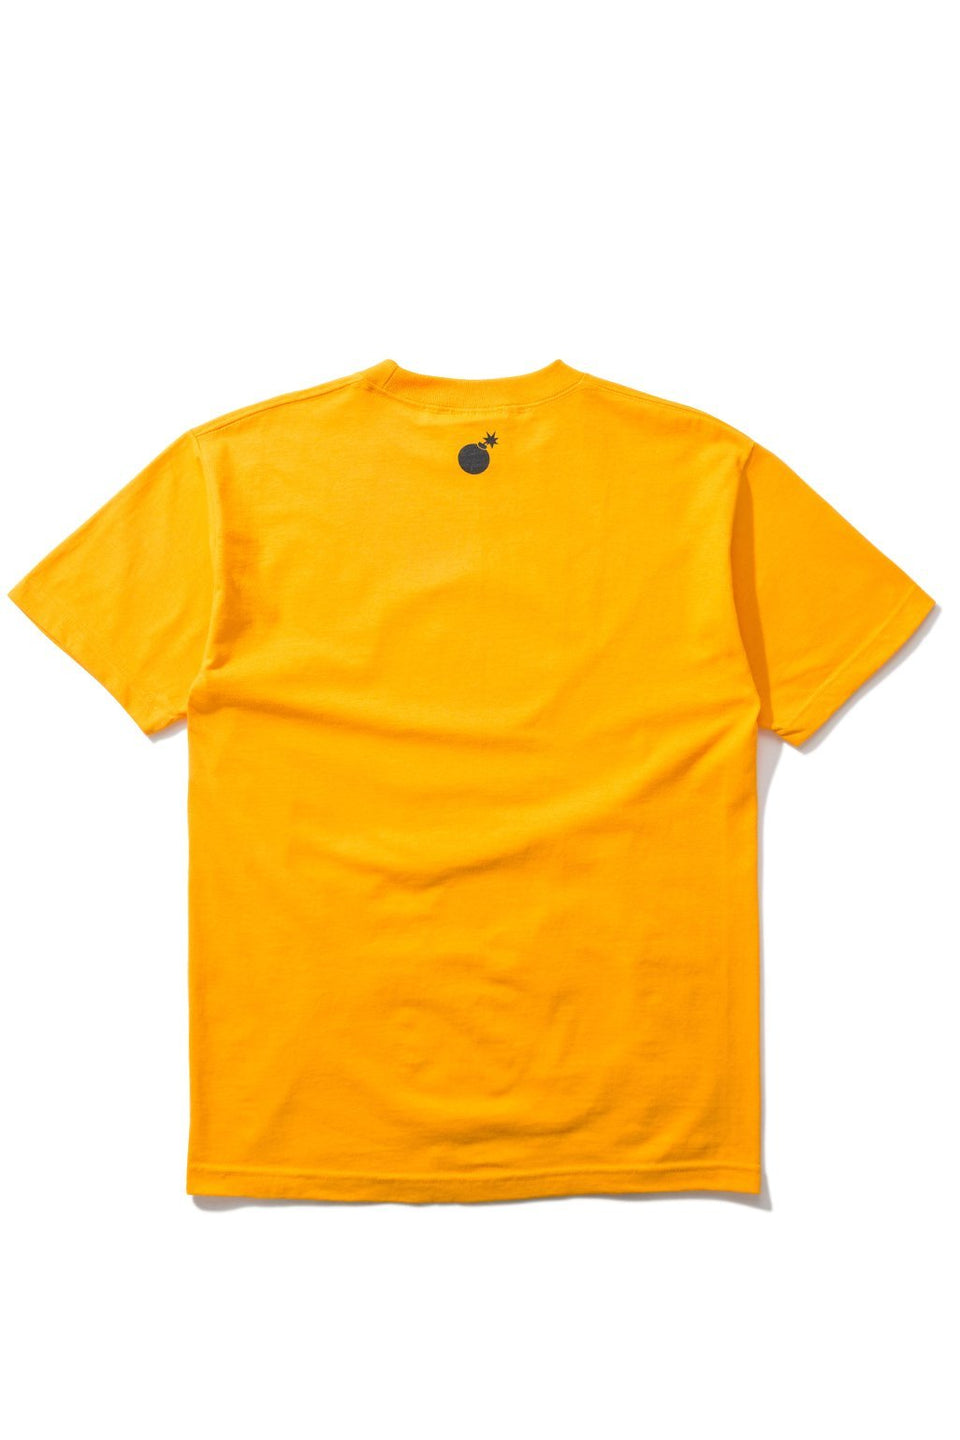 Atmosphere T-Shirt-TOPS-The Hundreds UK